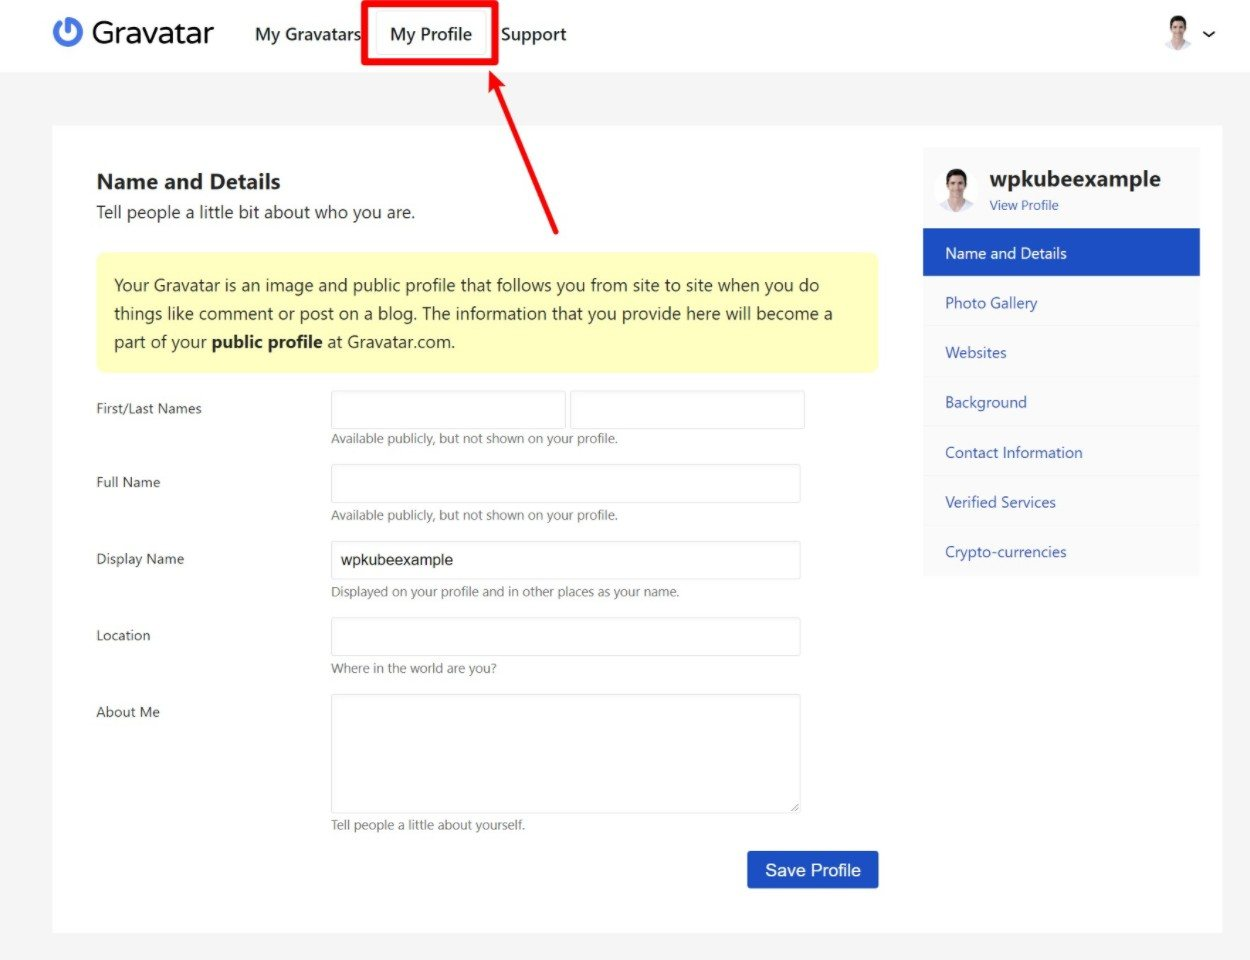 How to add profile details